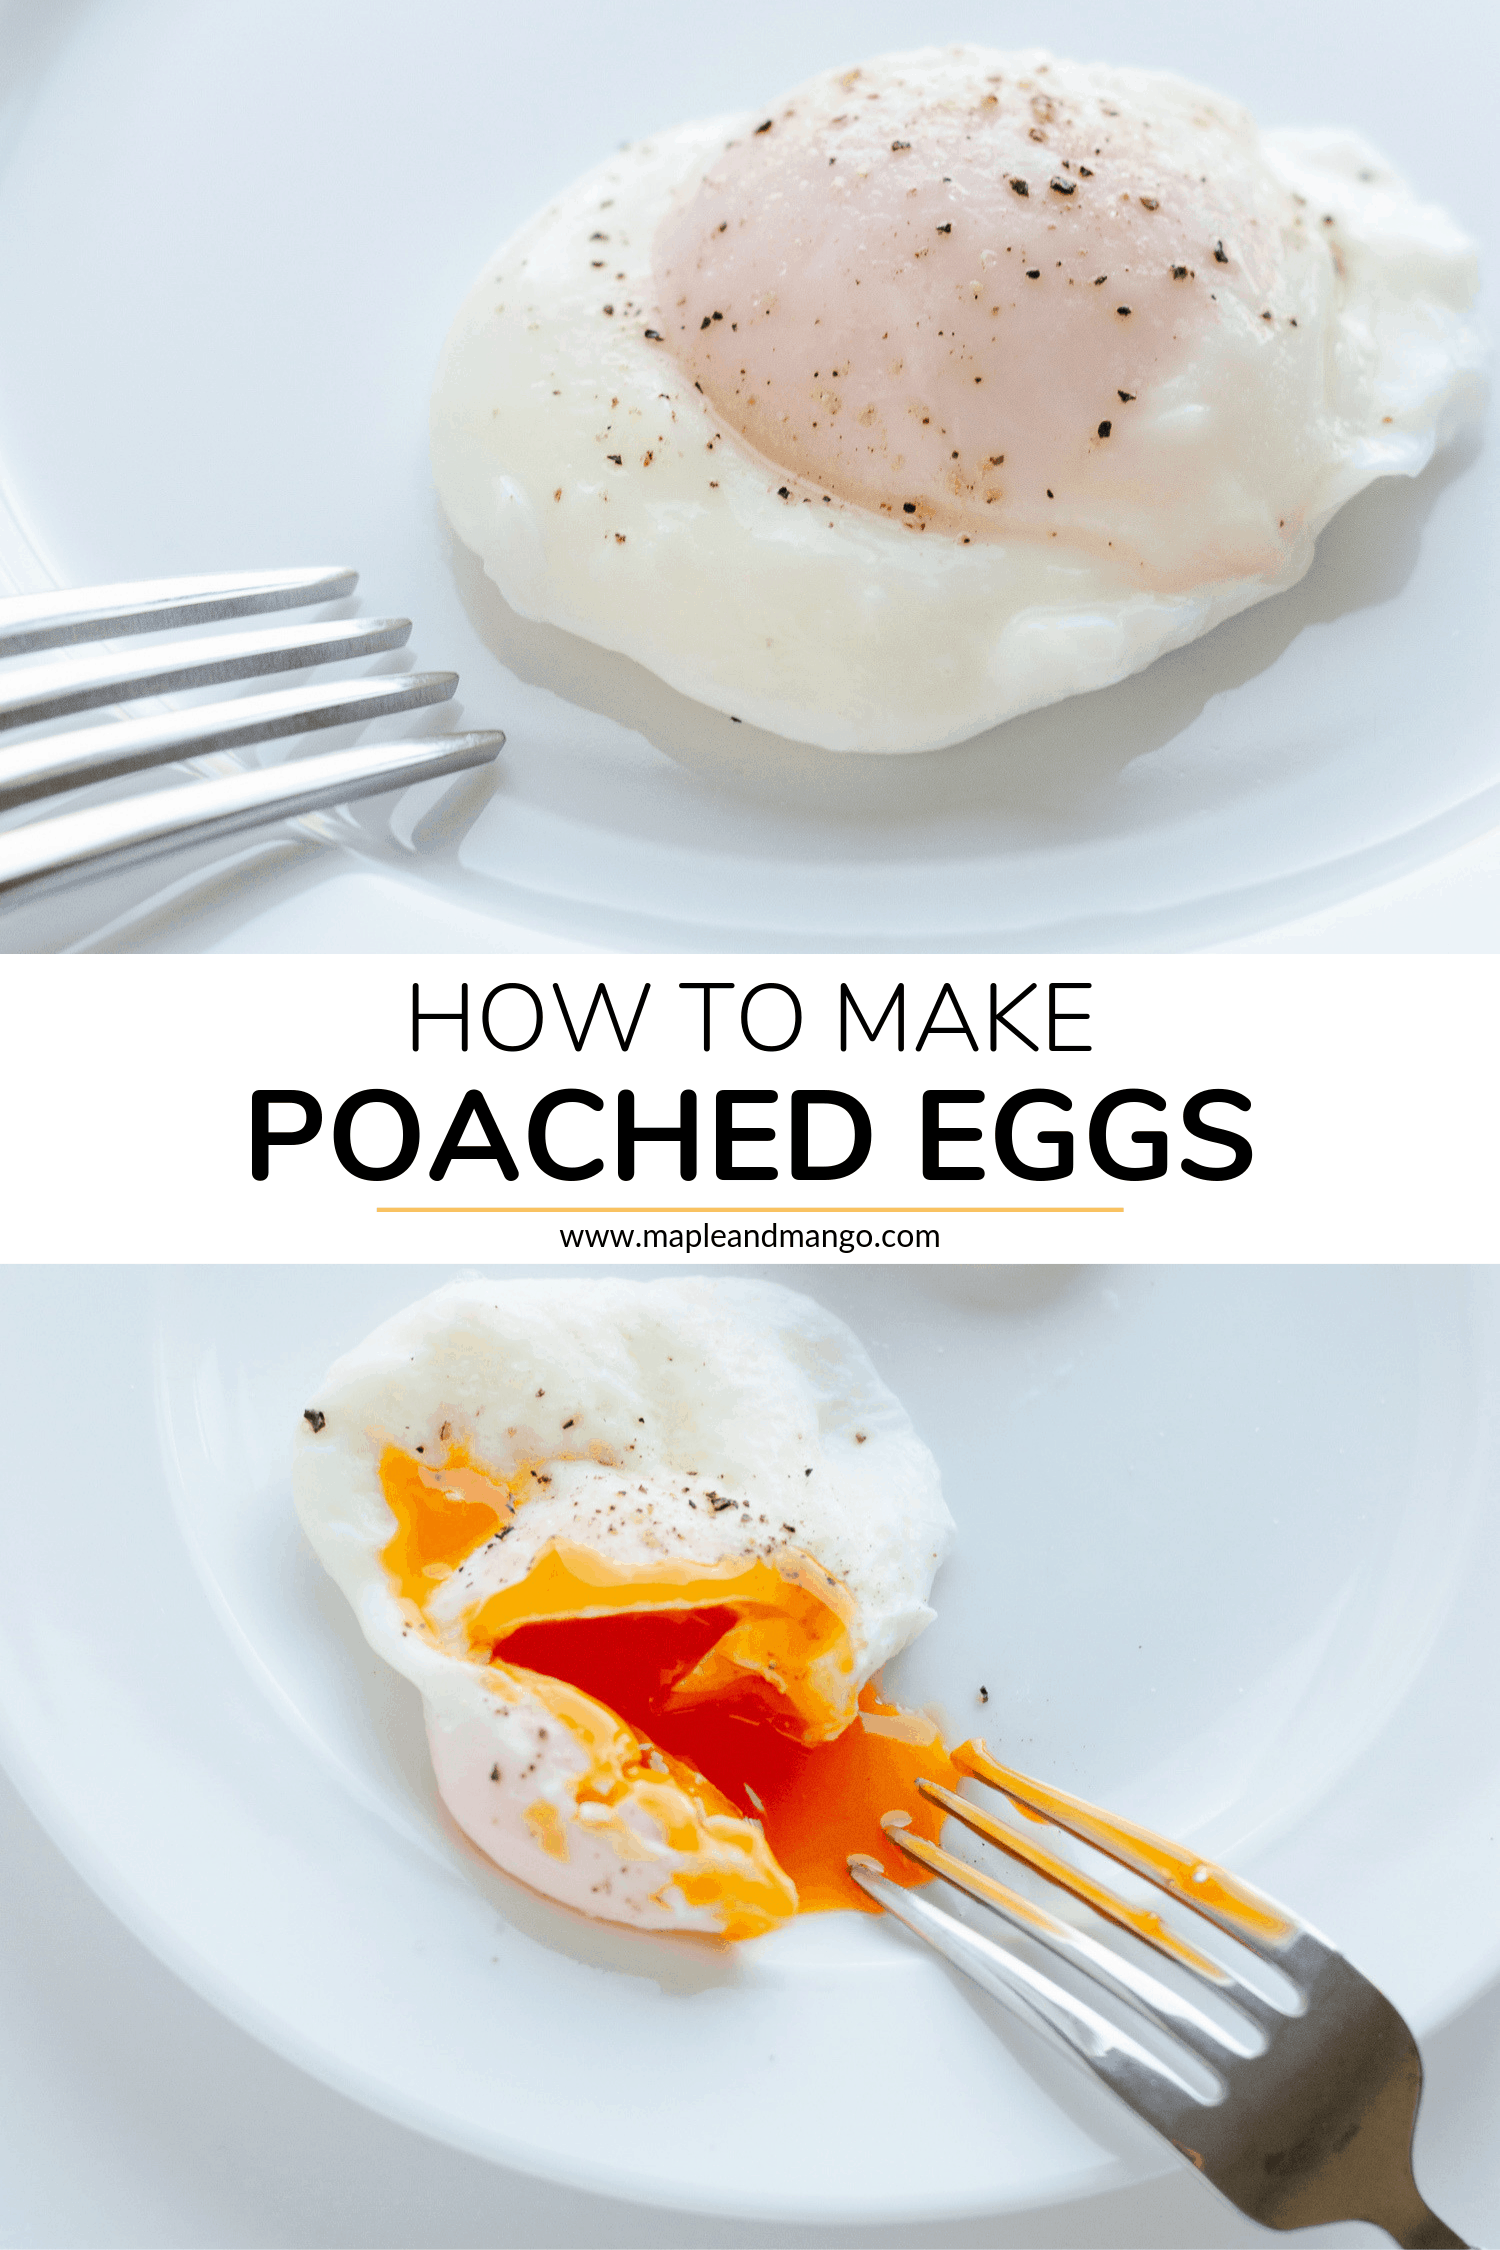 pinterest image with 2 pictures and text - picture of a whole poached egg and picture of a poached egg where yolk has been cut into